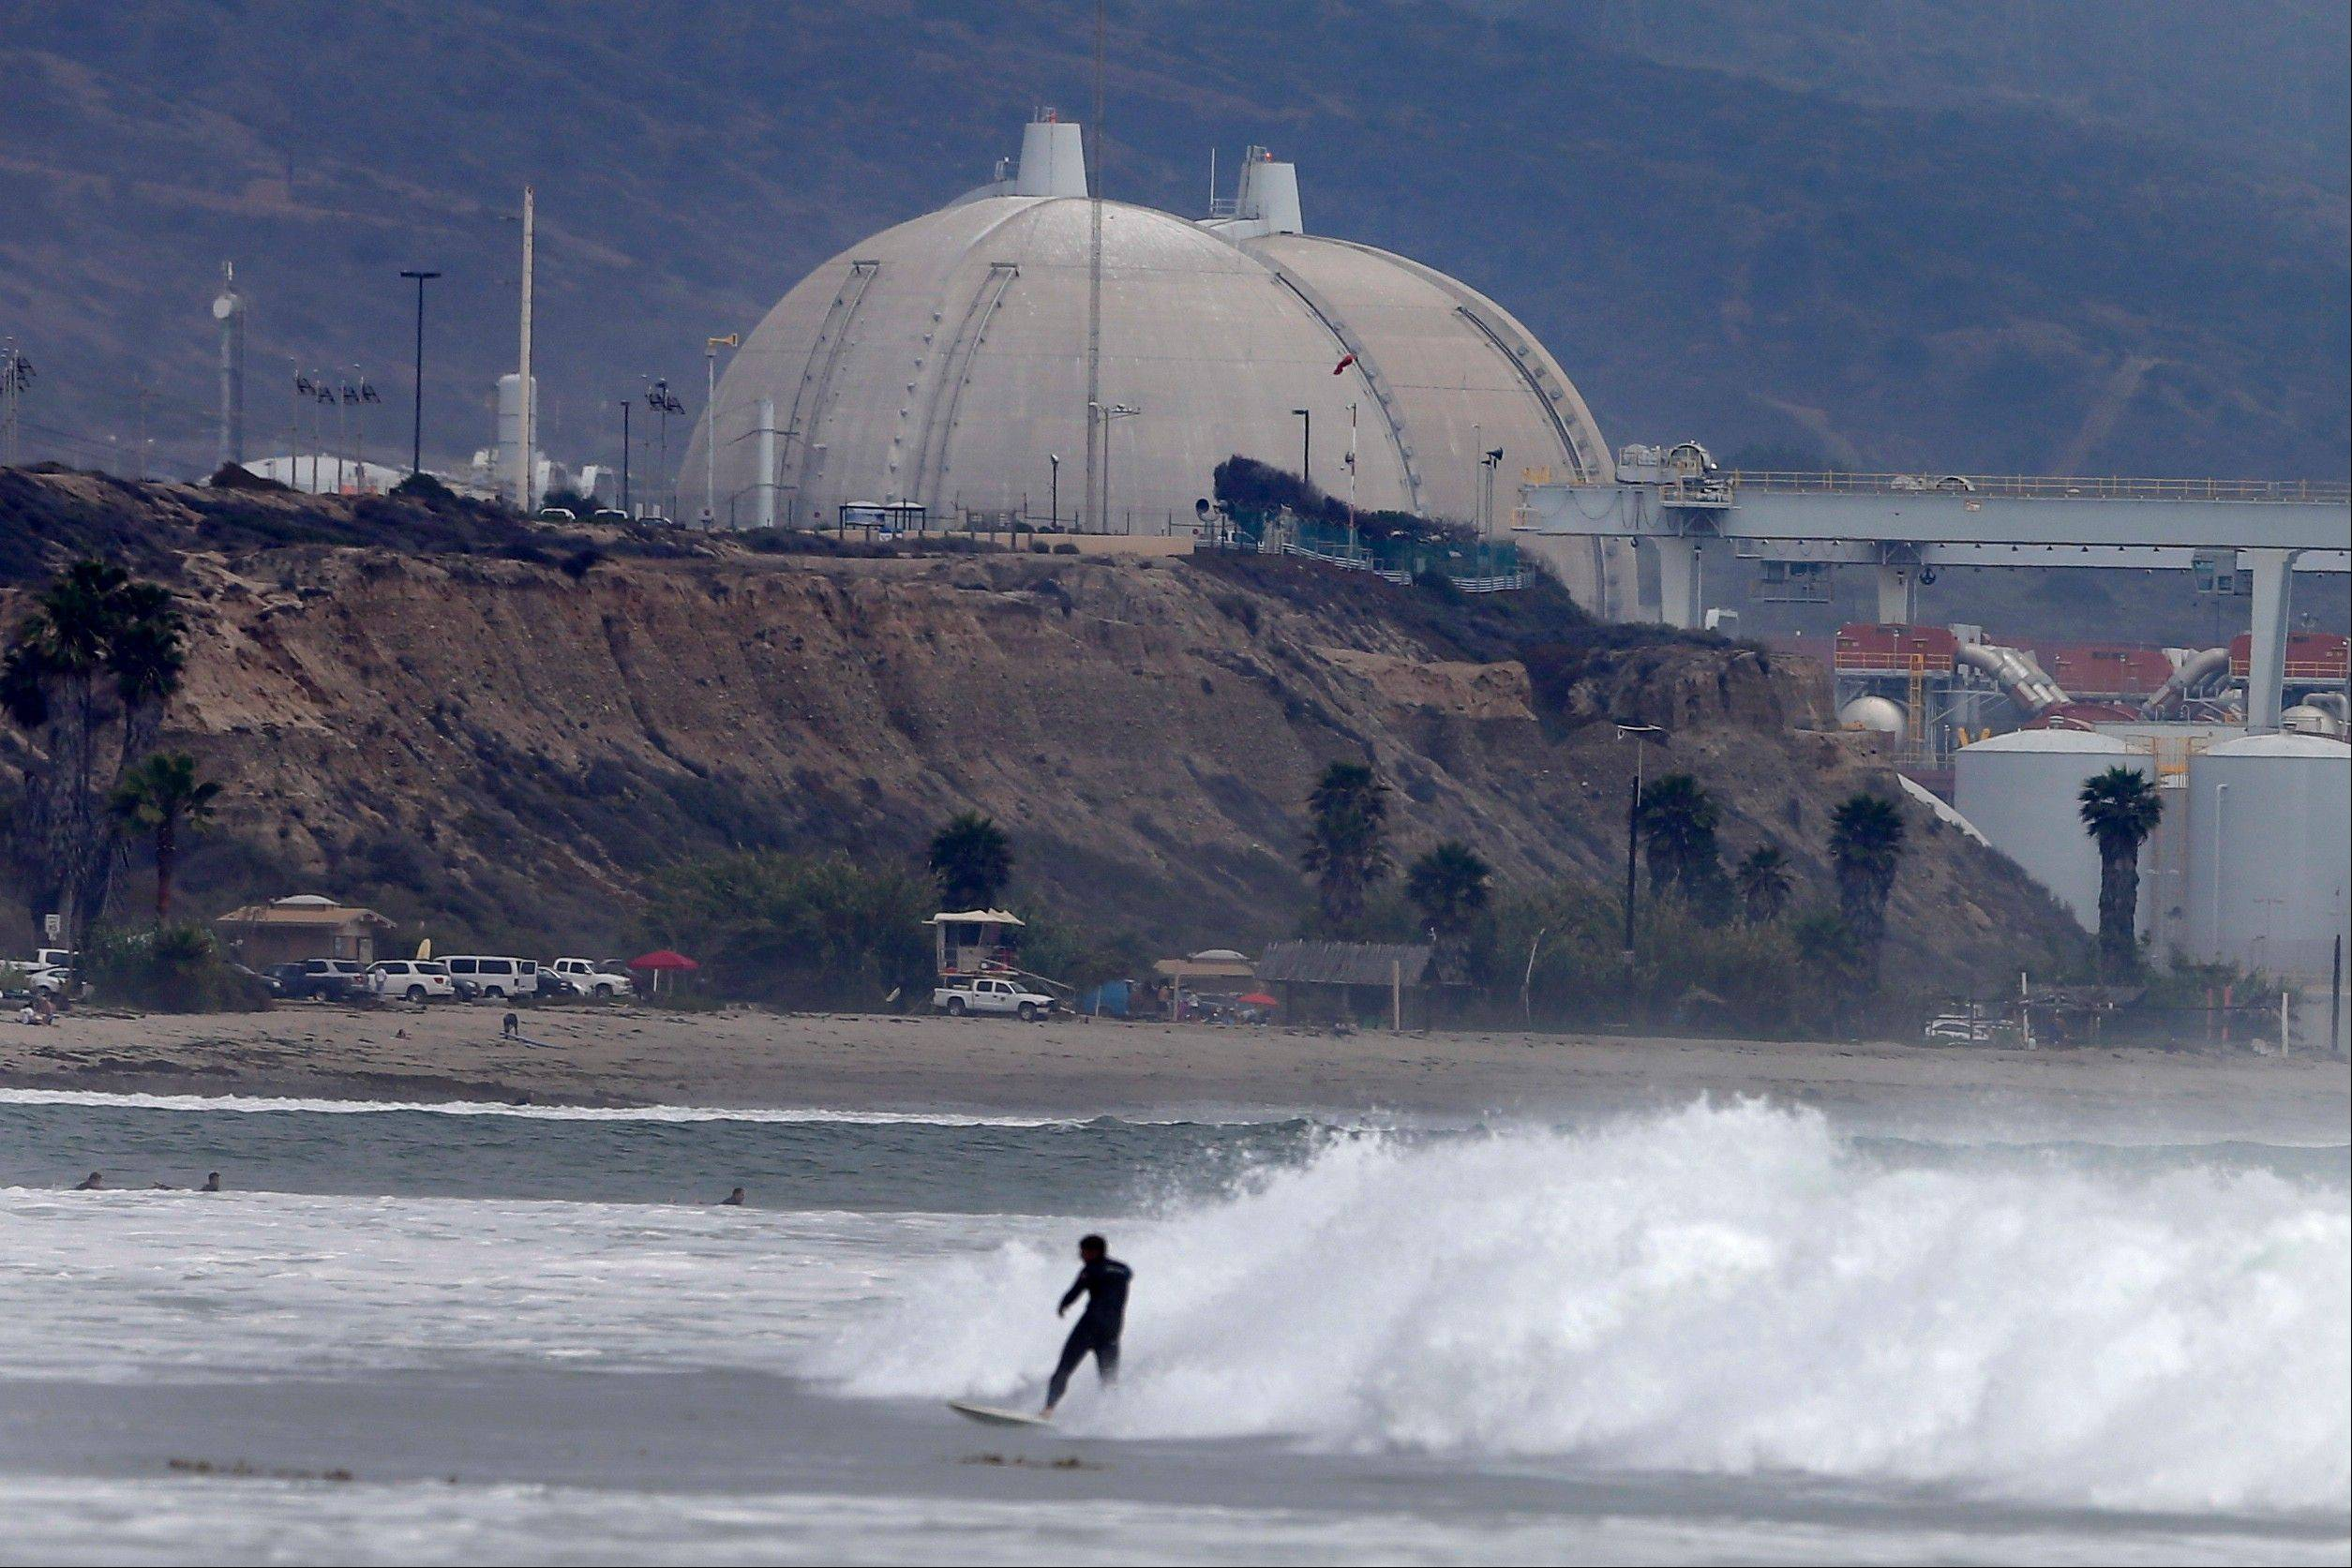 A surfer rides a wave Friday in front of the San Onofre nuclear power plant, in San Onofre, Calif.